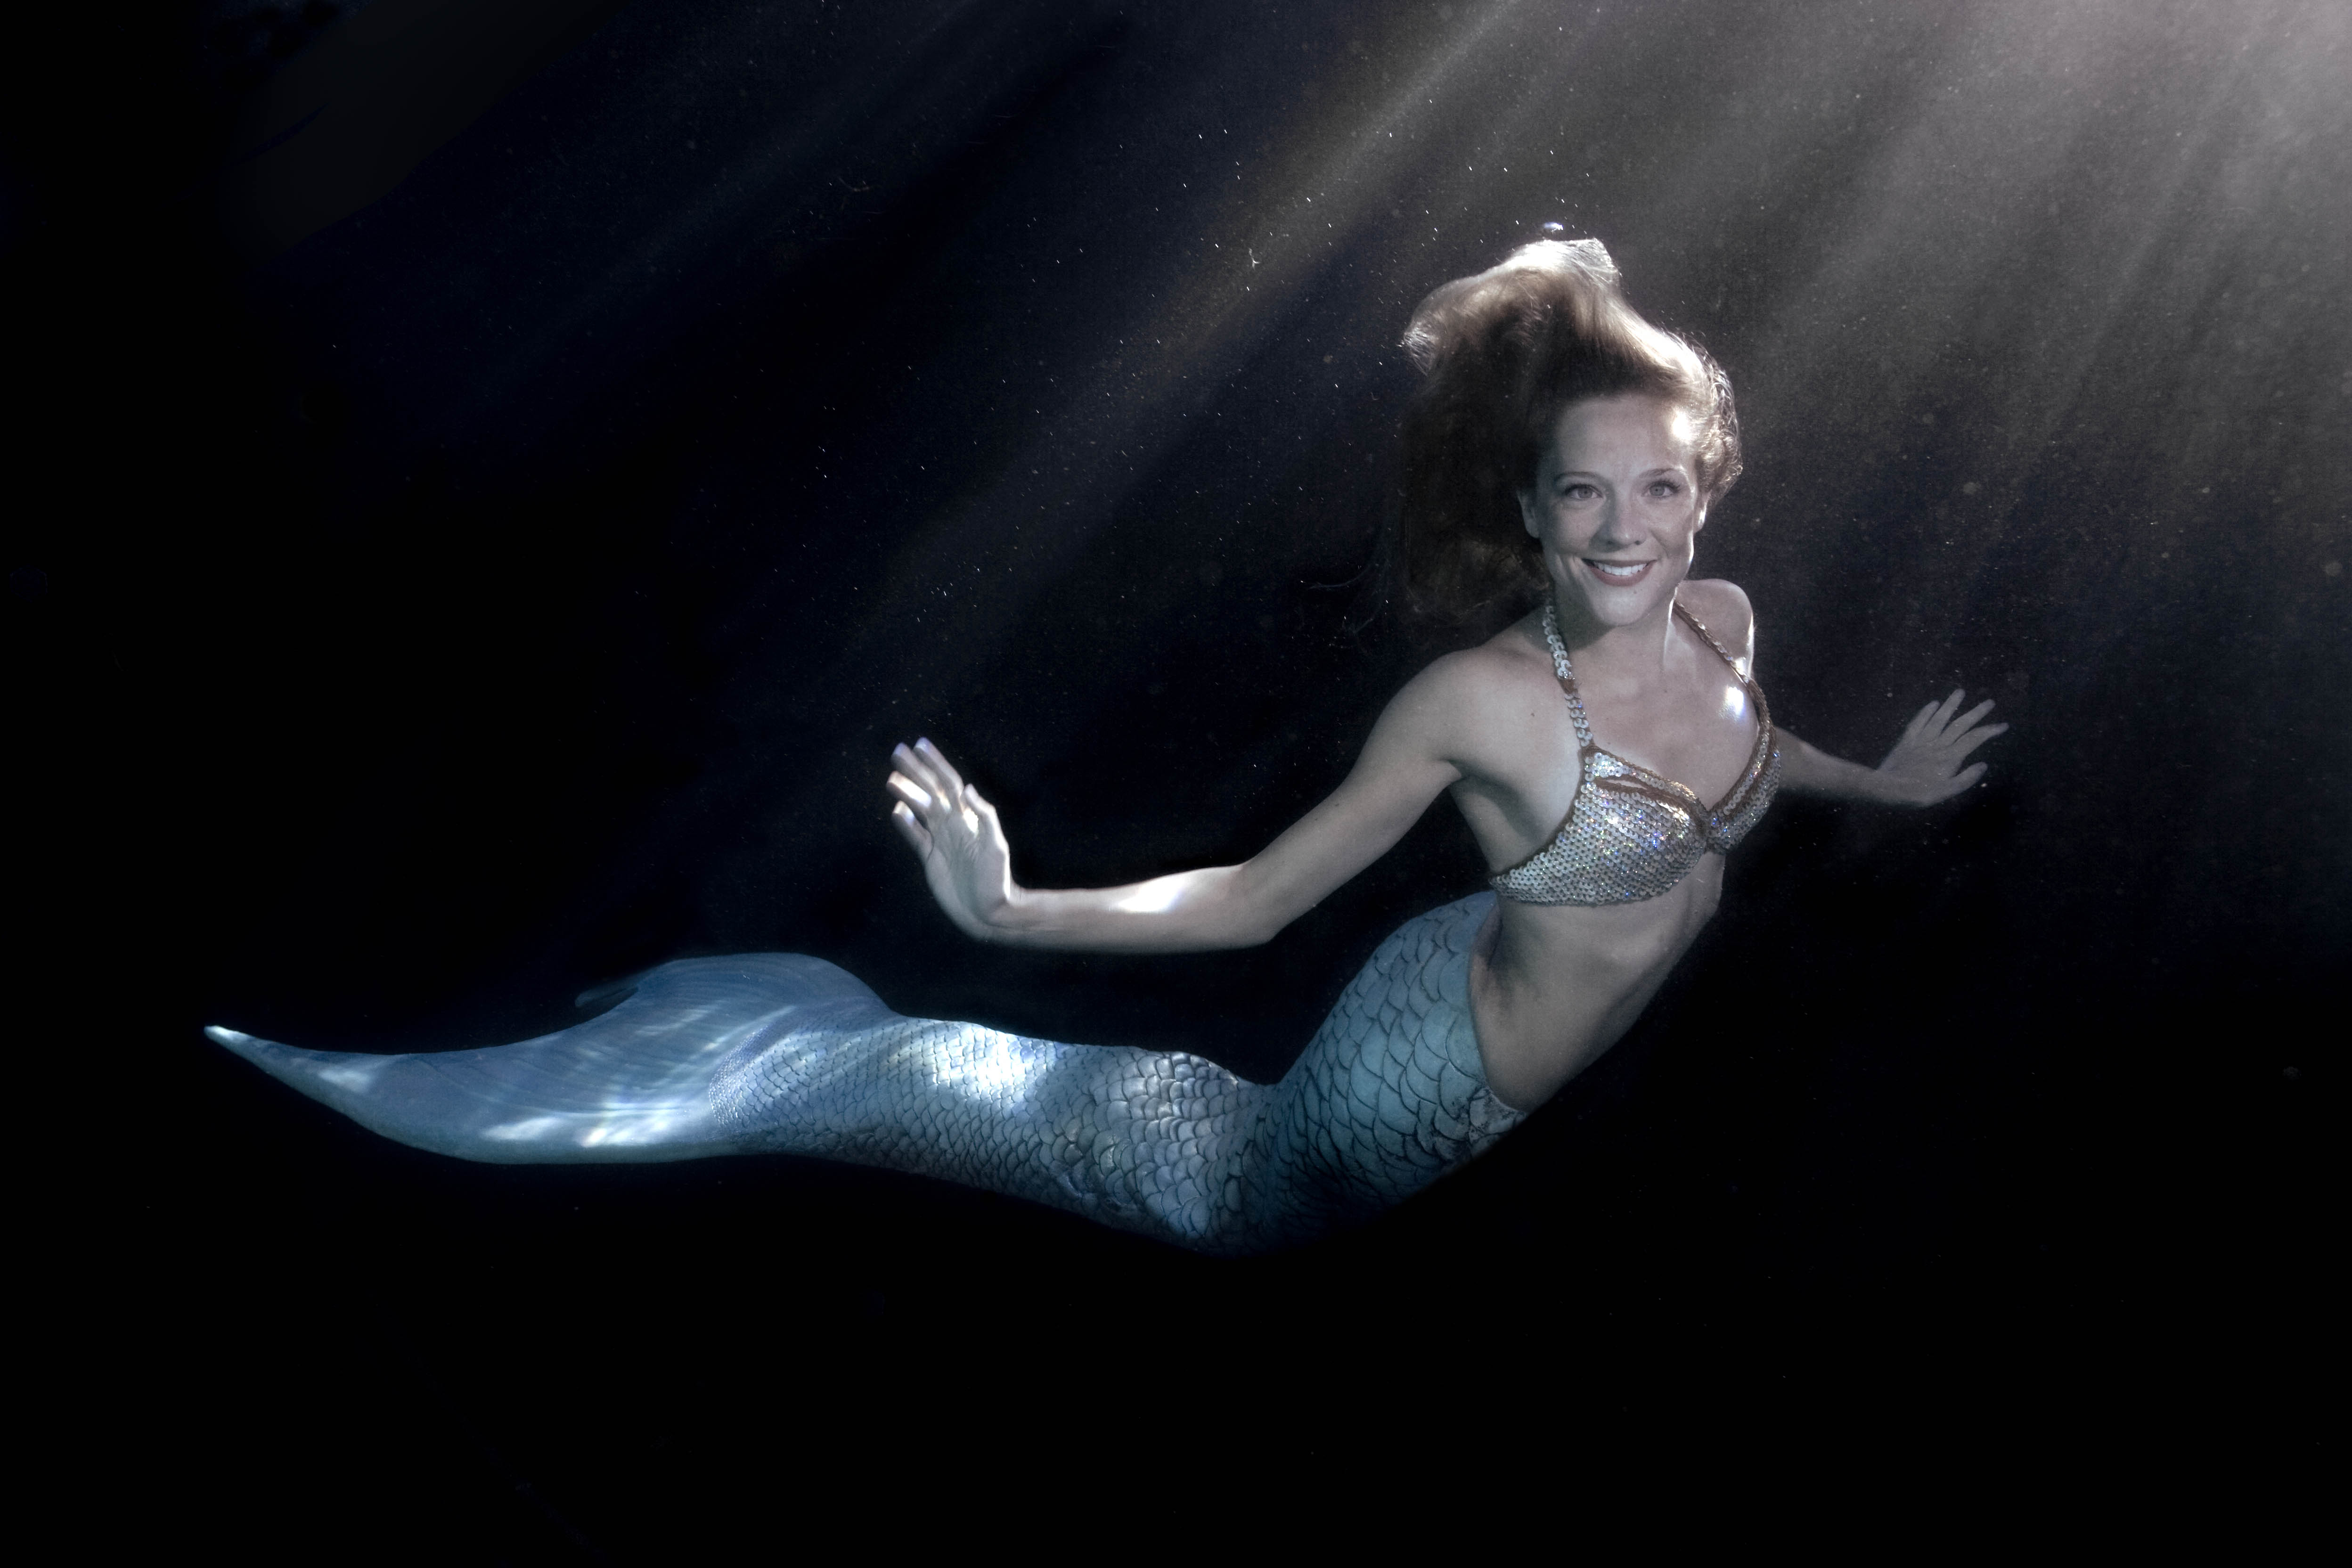 Mermaid-for-hire Linden Wolbert